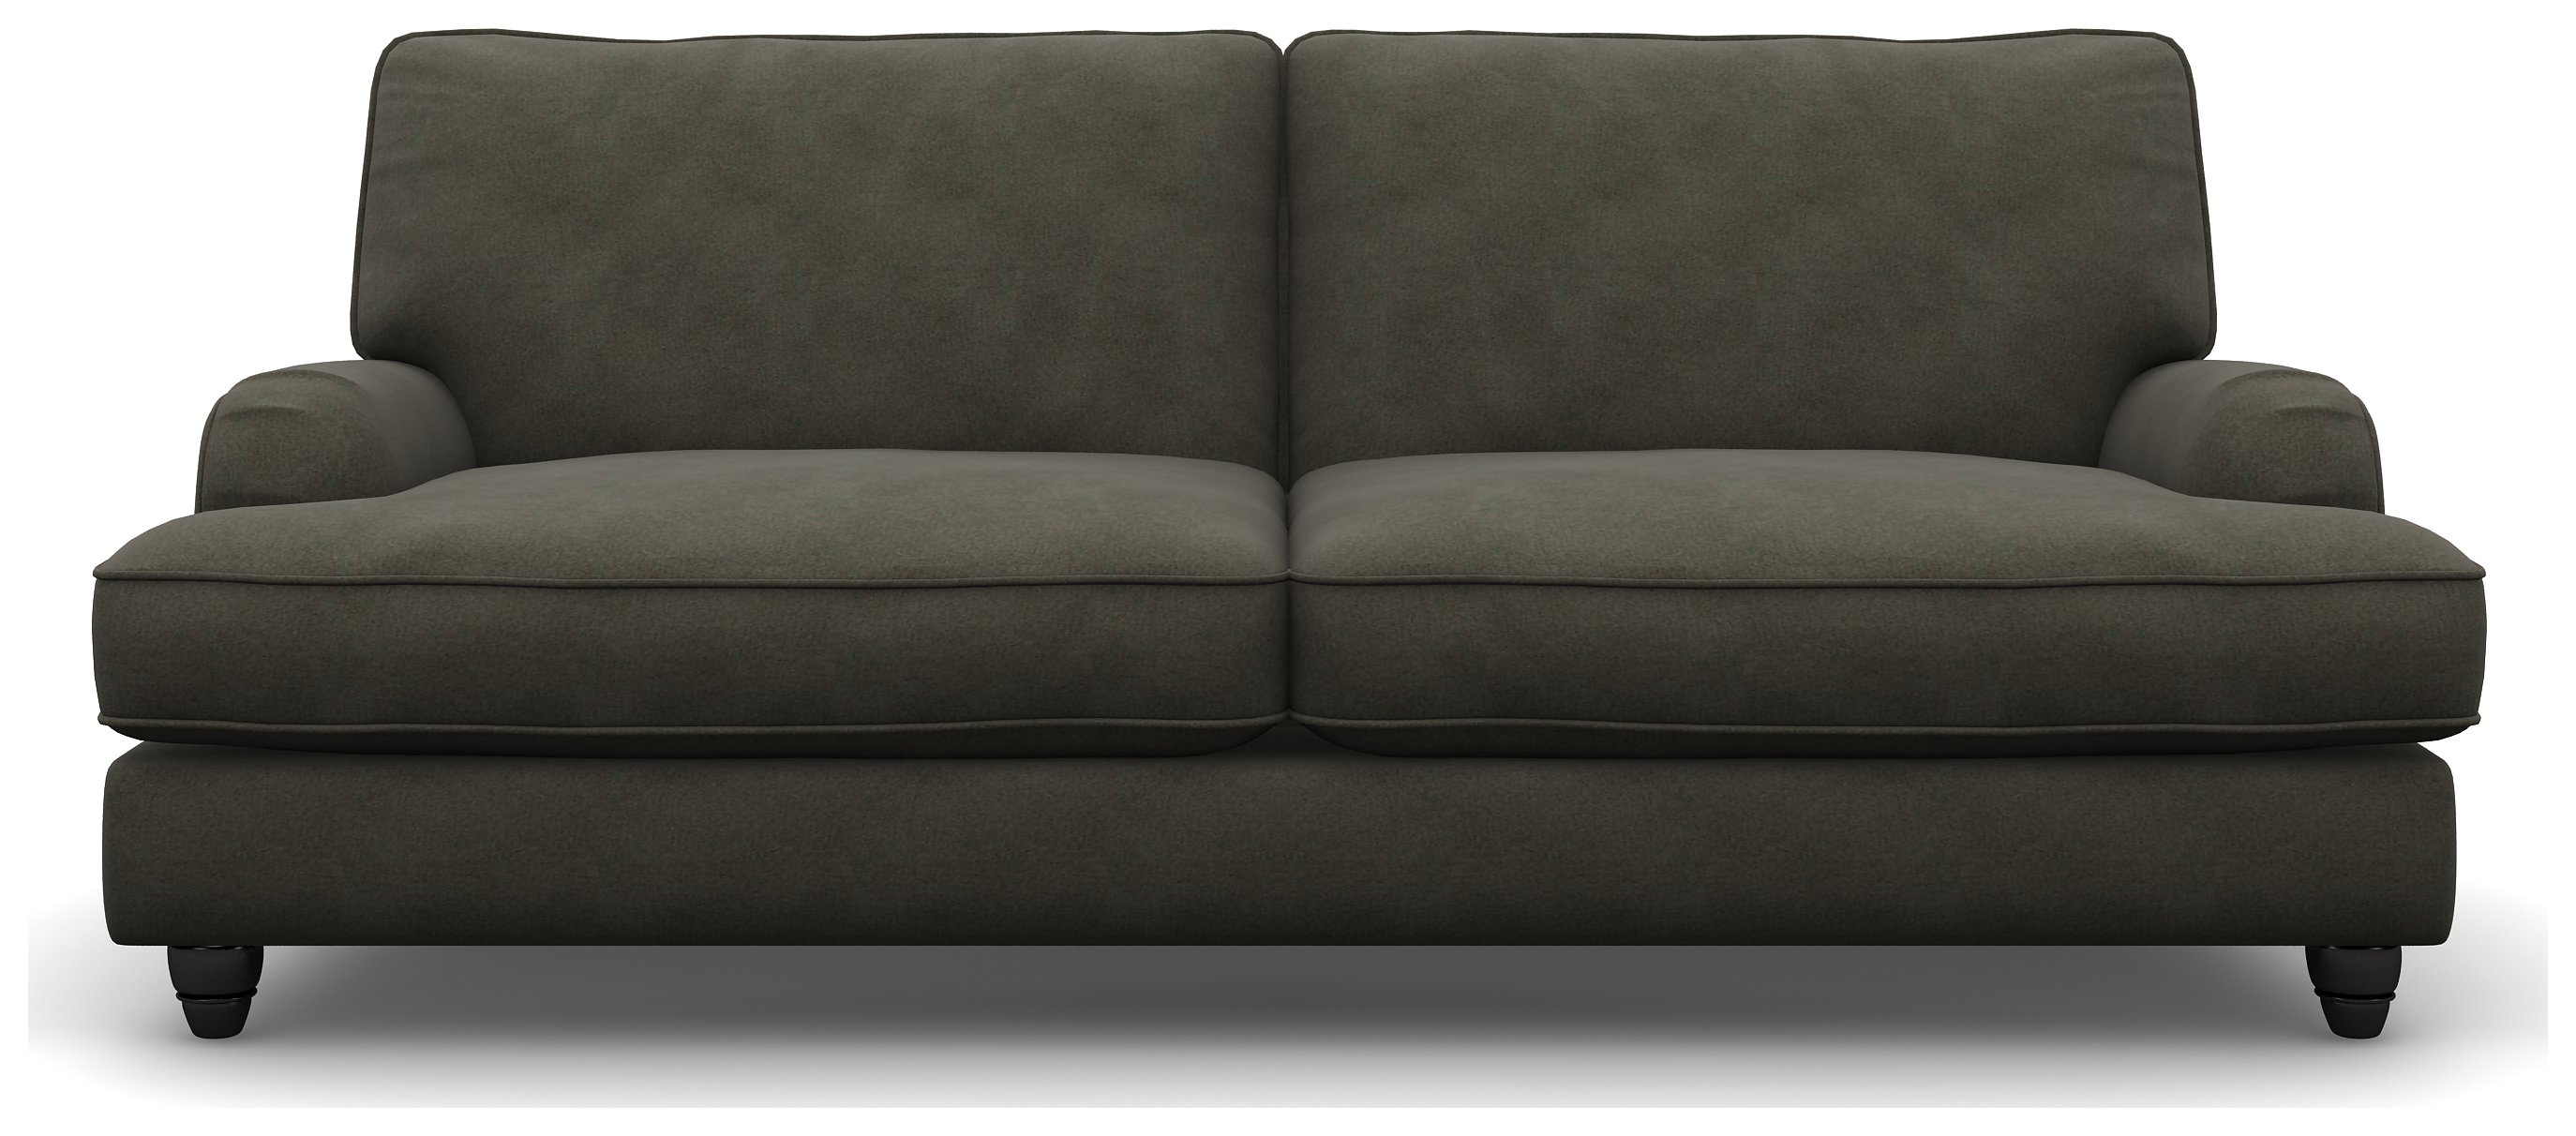 Heart of House Adeline Modern 3 Seater Fabric Sofa - Slate.